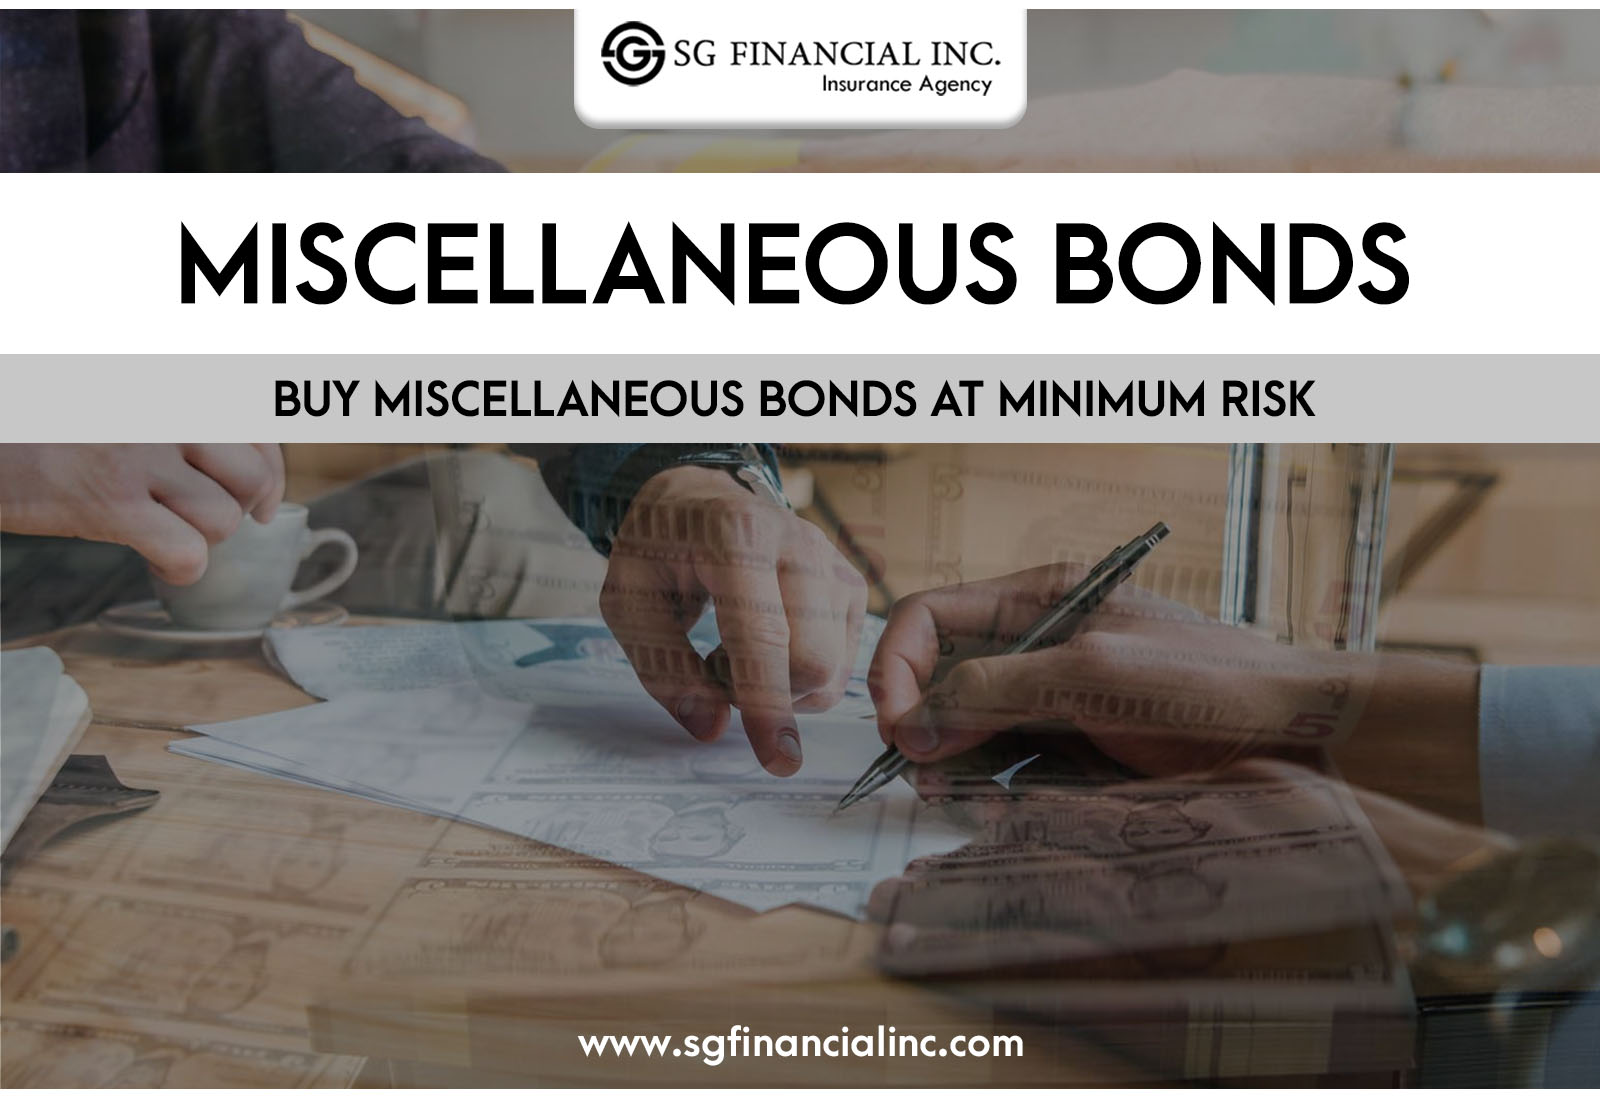 Most Important Things About Miscellaneous Bonds